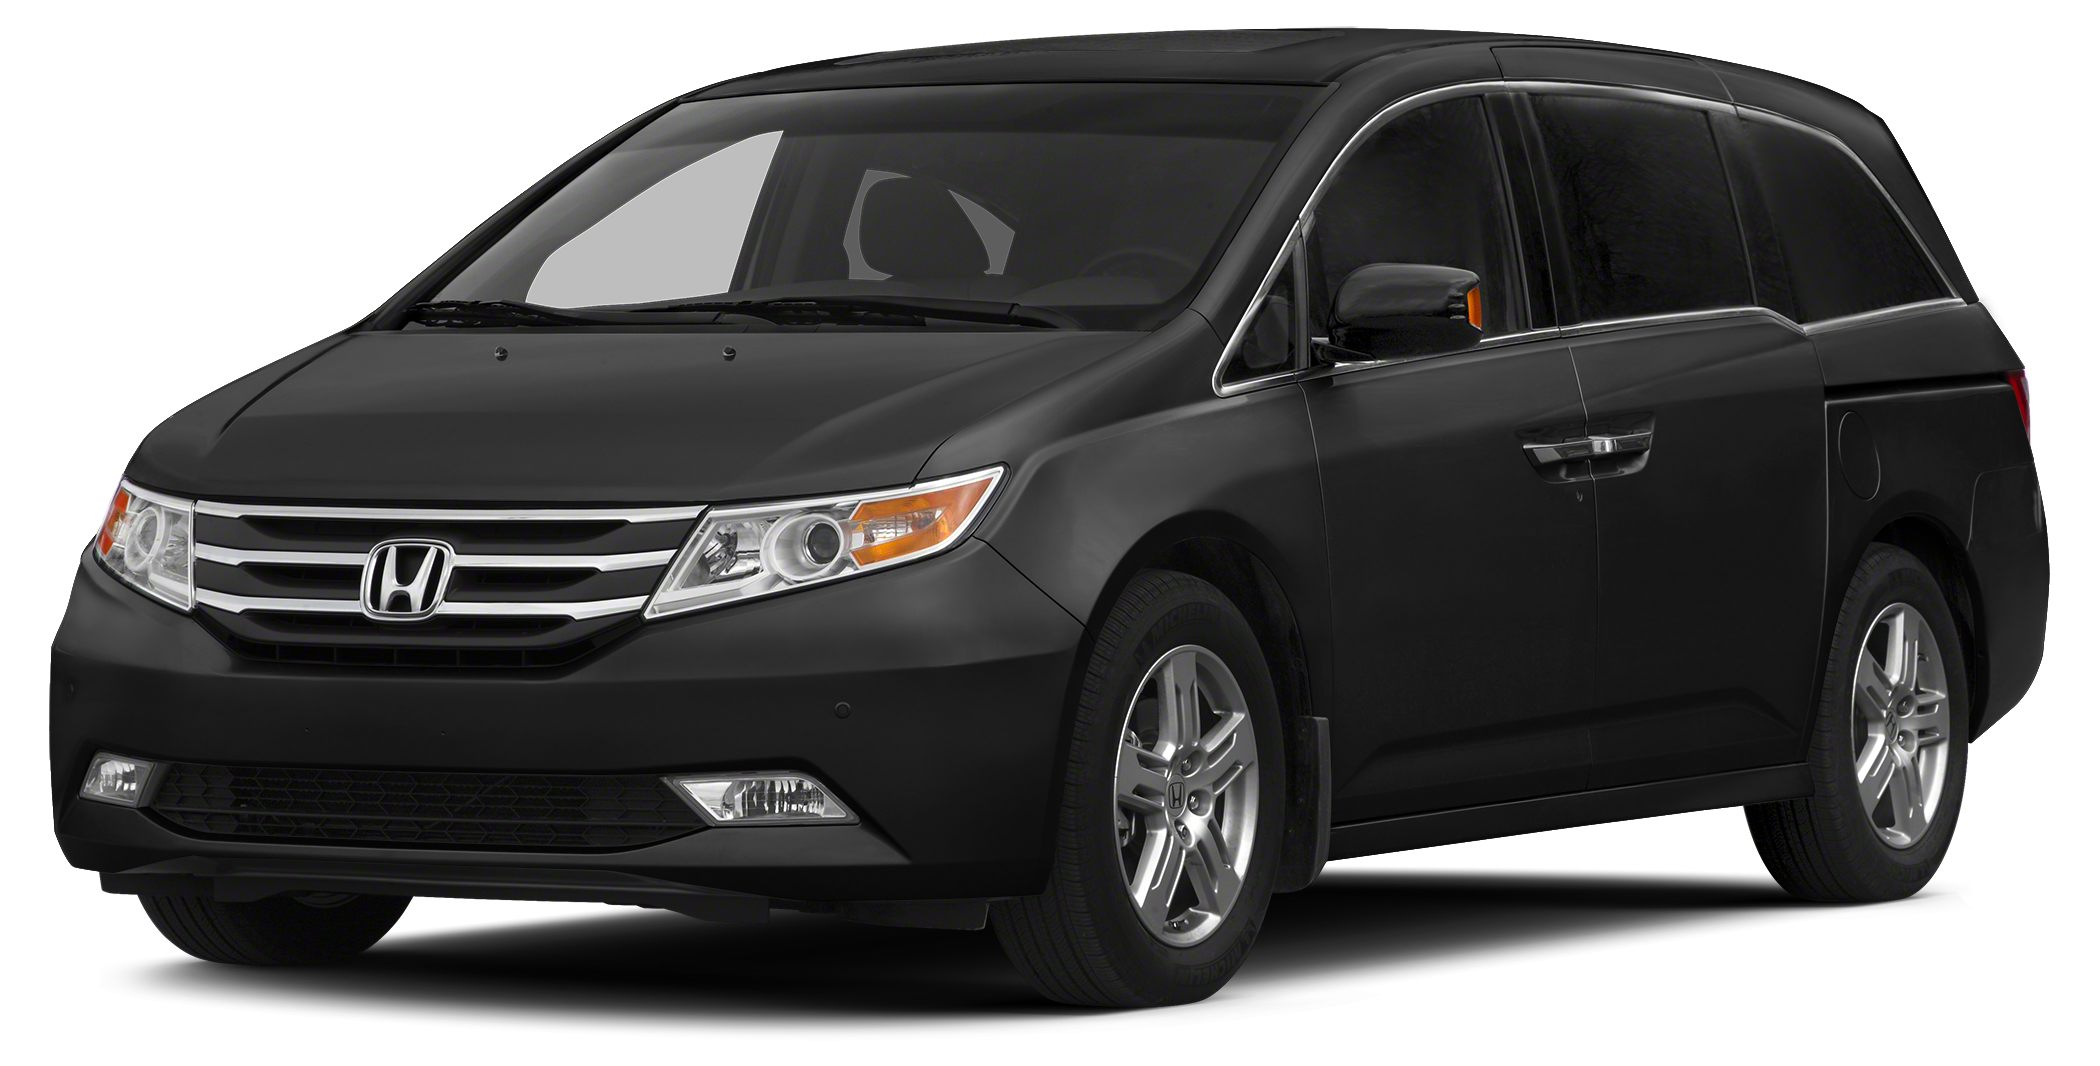 2013 Honda Odyssey EX-L ODYSSYEL EX-L HEATED SEATS 7 PASSENGER SEATING LEATHER ROOF HEATED SE